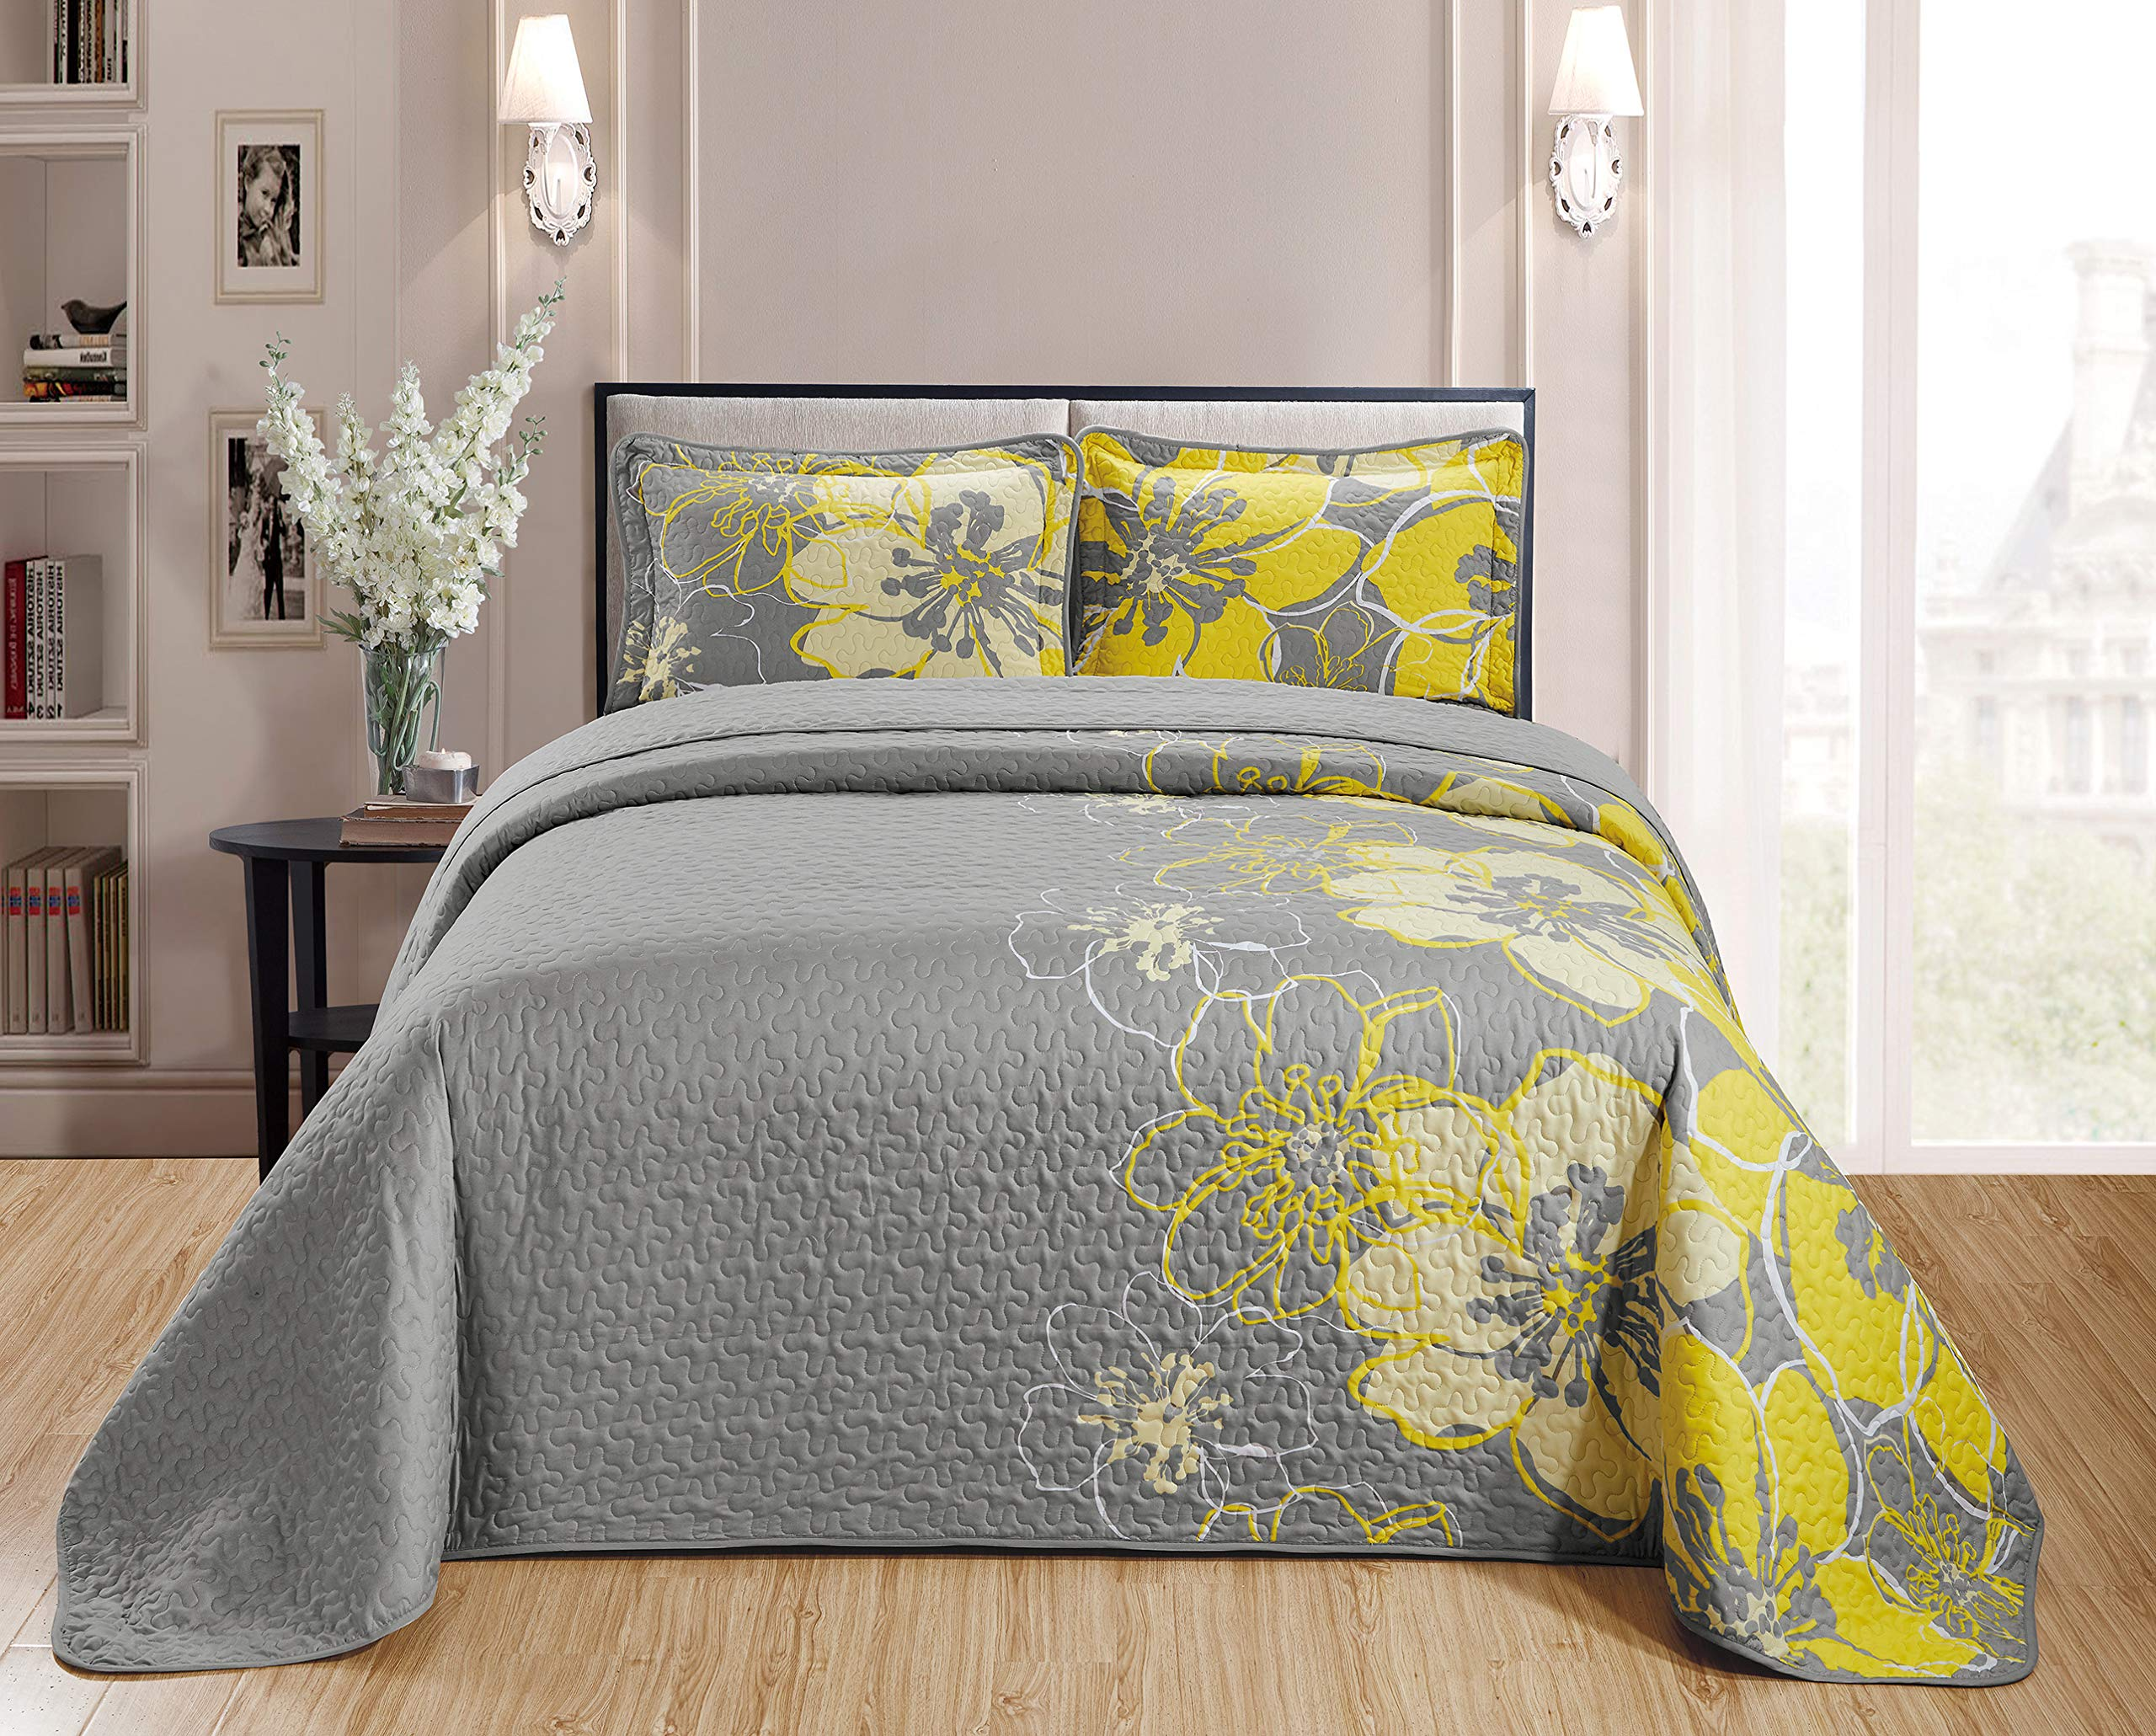 Kids Zone Home Linen 3pc Full/Queen Over Size Quilt Bedspread Grey with Big Yellow Flowers Printed On The Side. by Kids Zone Home Linen